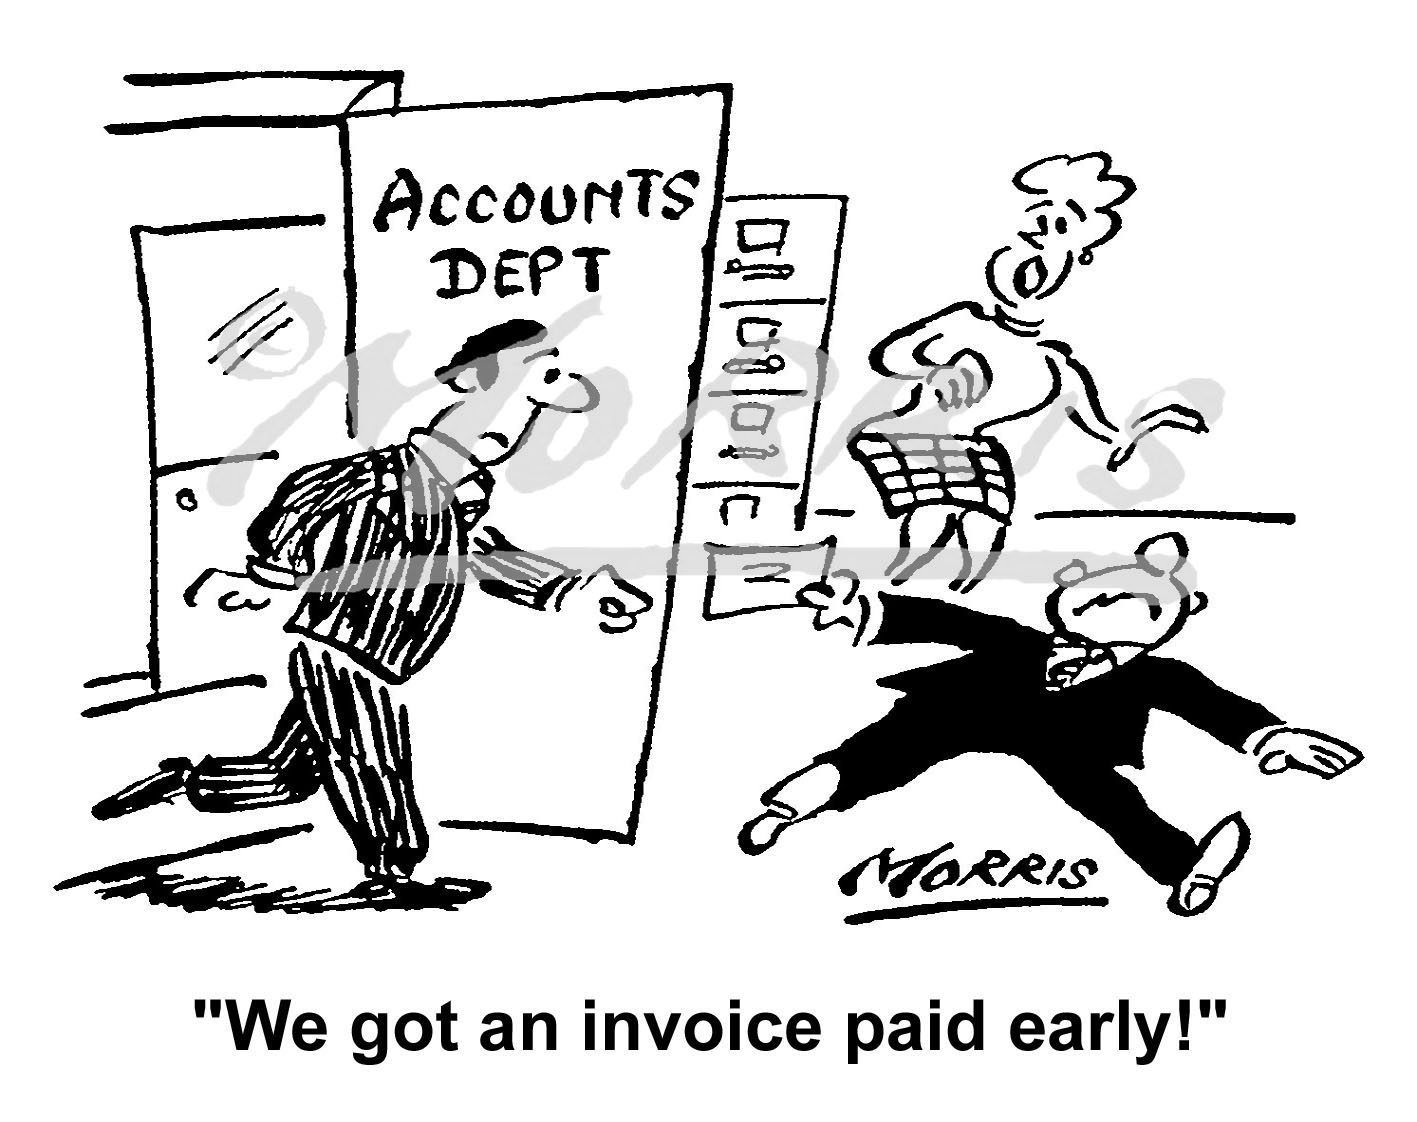 Company Accounts invoice cartoon